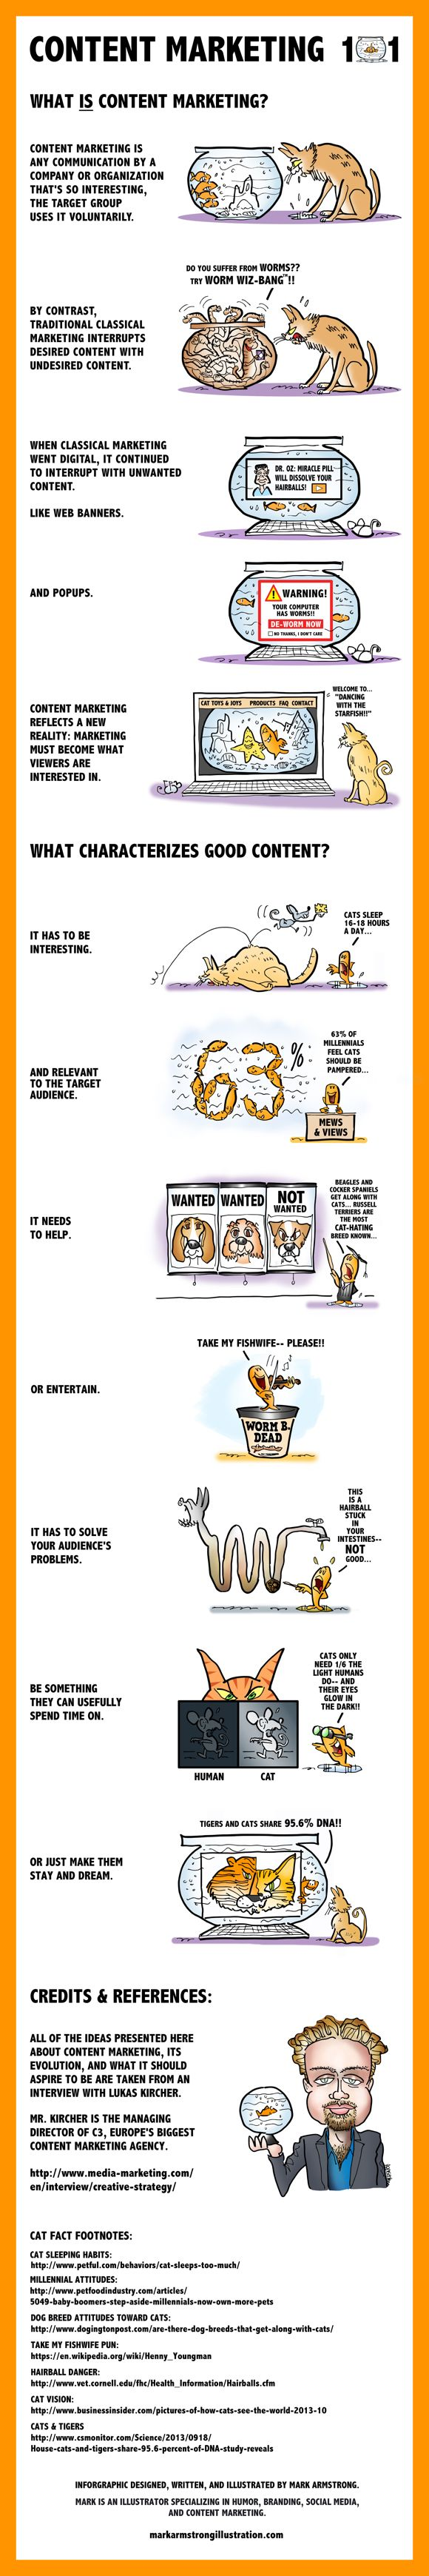 Cute Animation in explaining Content Marketing | Marketing Content 101 | #contentmarketing